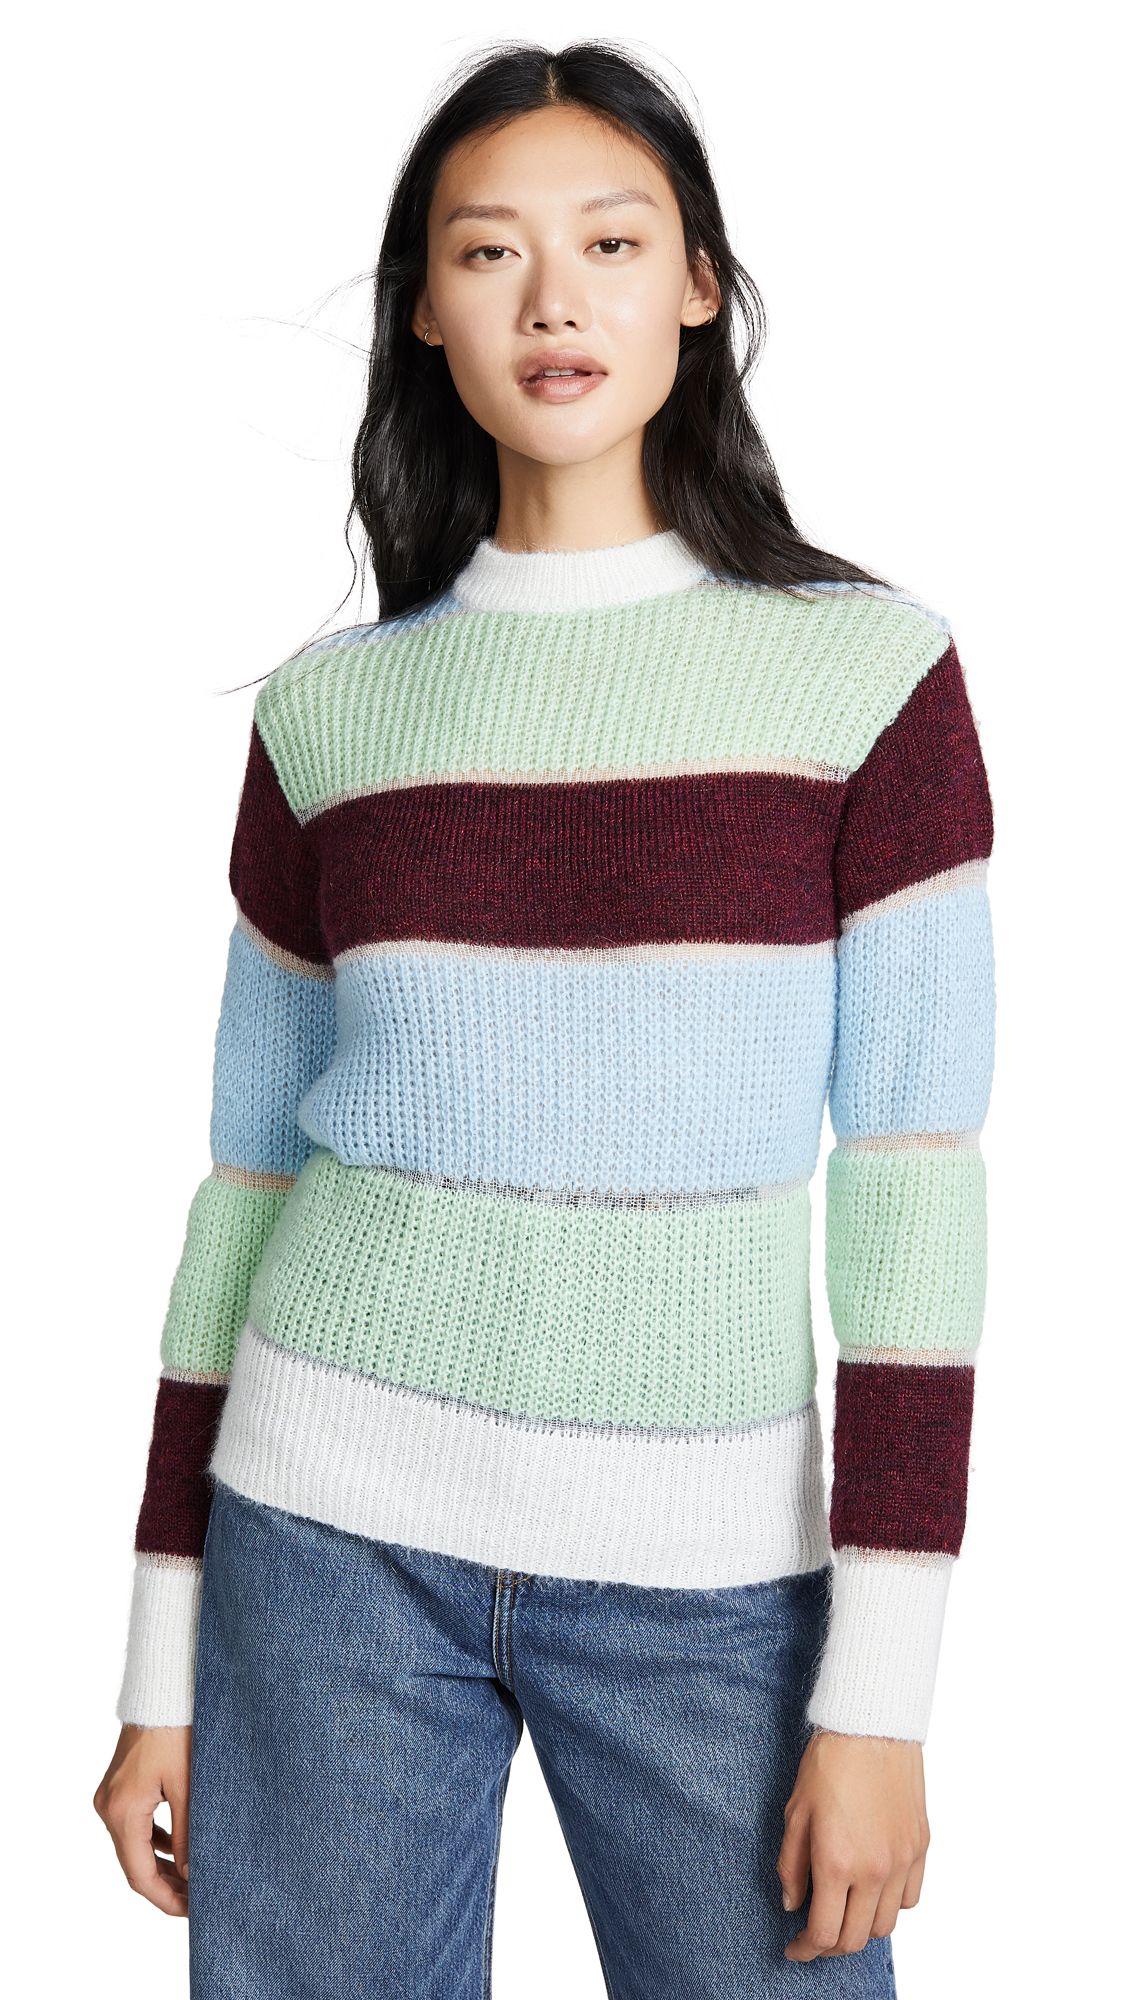 PH5 Massimo Mohair Color Blocked Pullover in Mint/Maroon/Multi